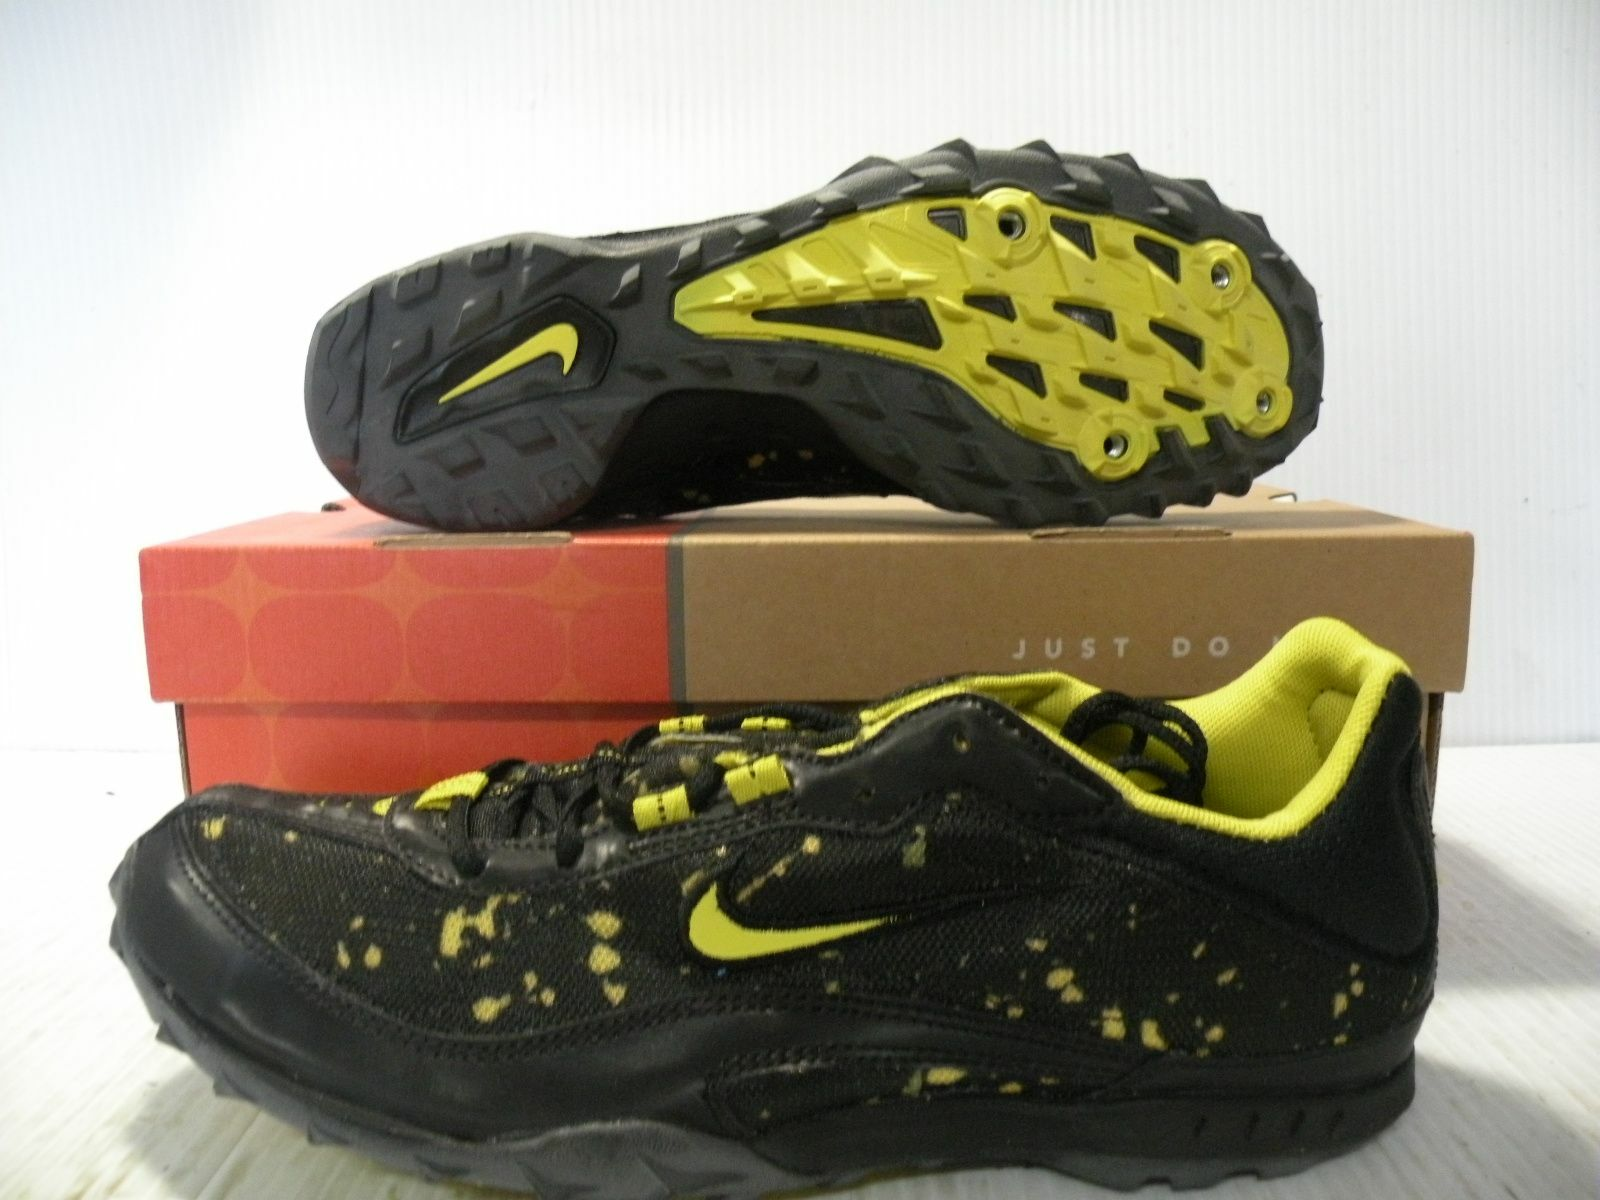 NIKE ZOOM WAFFLE SPIKE LOW MEN SHOES BLACK/YELLOW 308620-171 SIZE 11 NEW